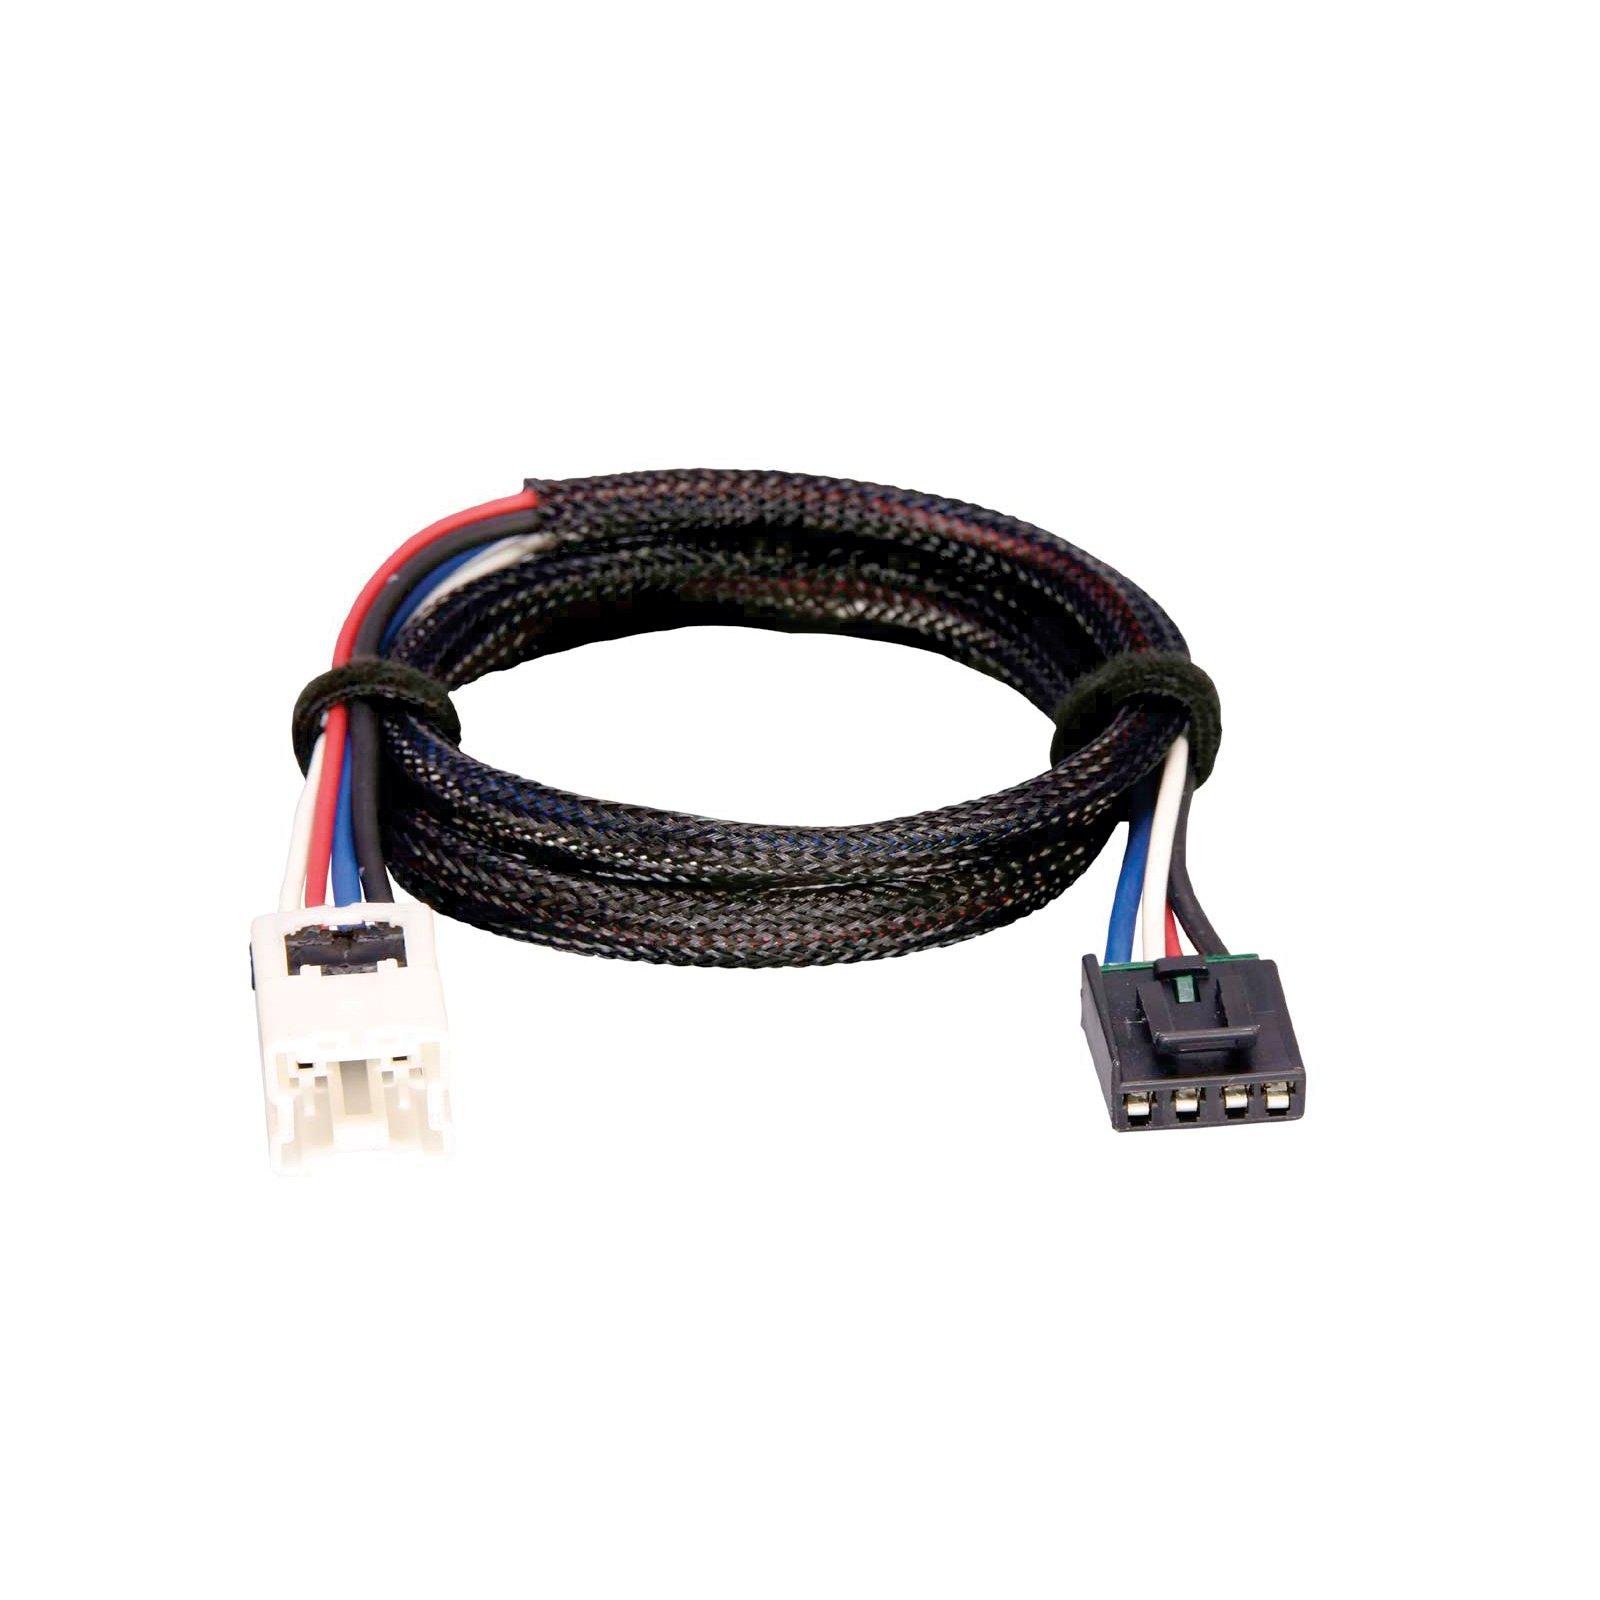 Amazon.com: Tekonsha 3050-P Brake Control Wiring Adapter for Nissan:  Tekonsha: Automotive